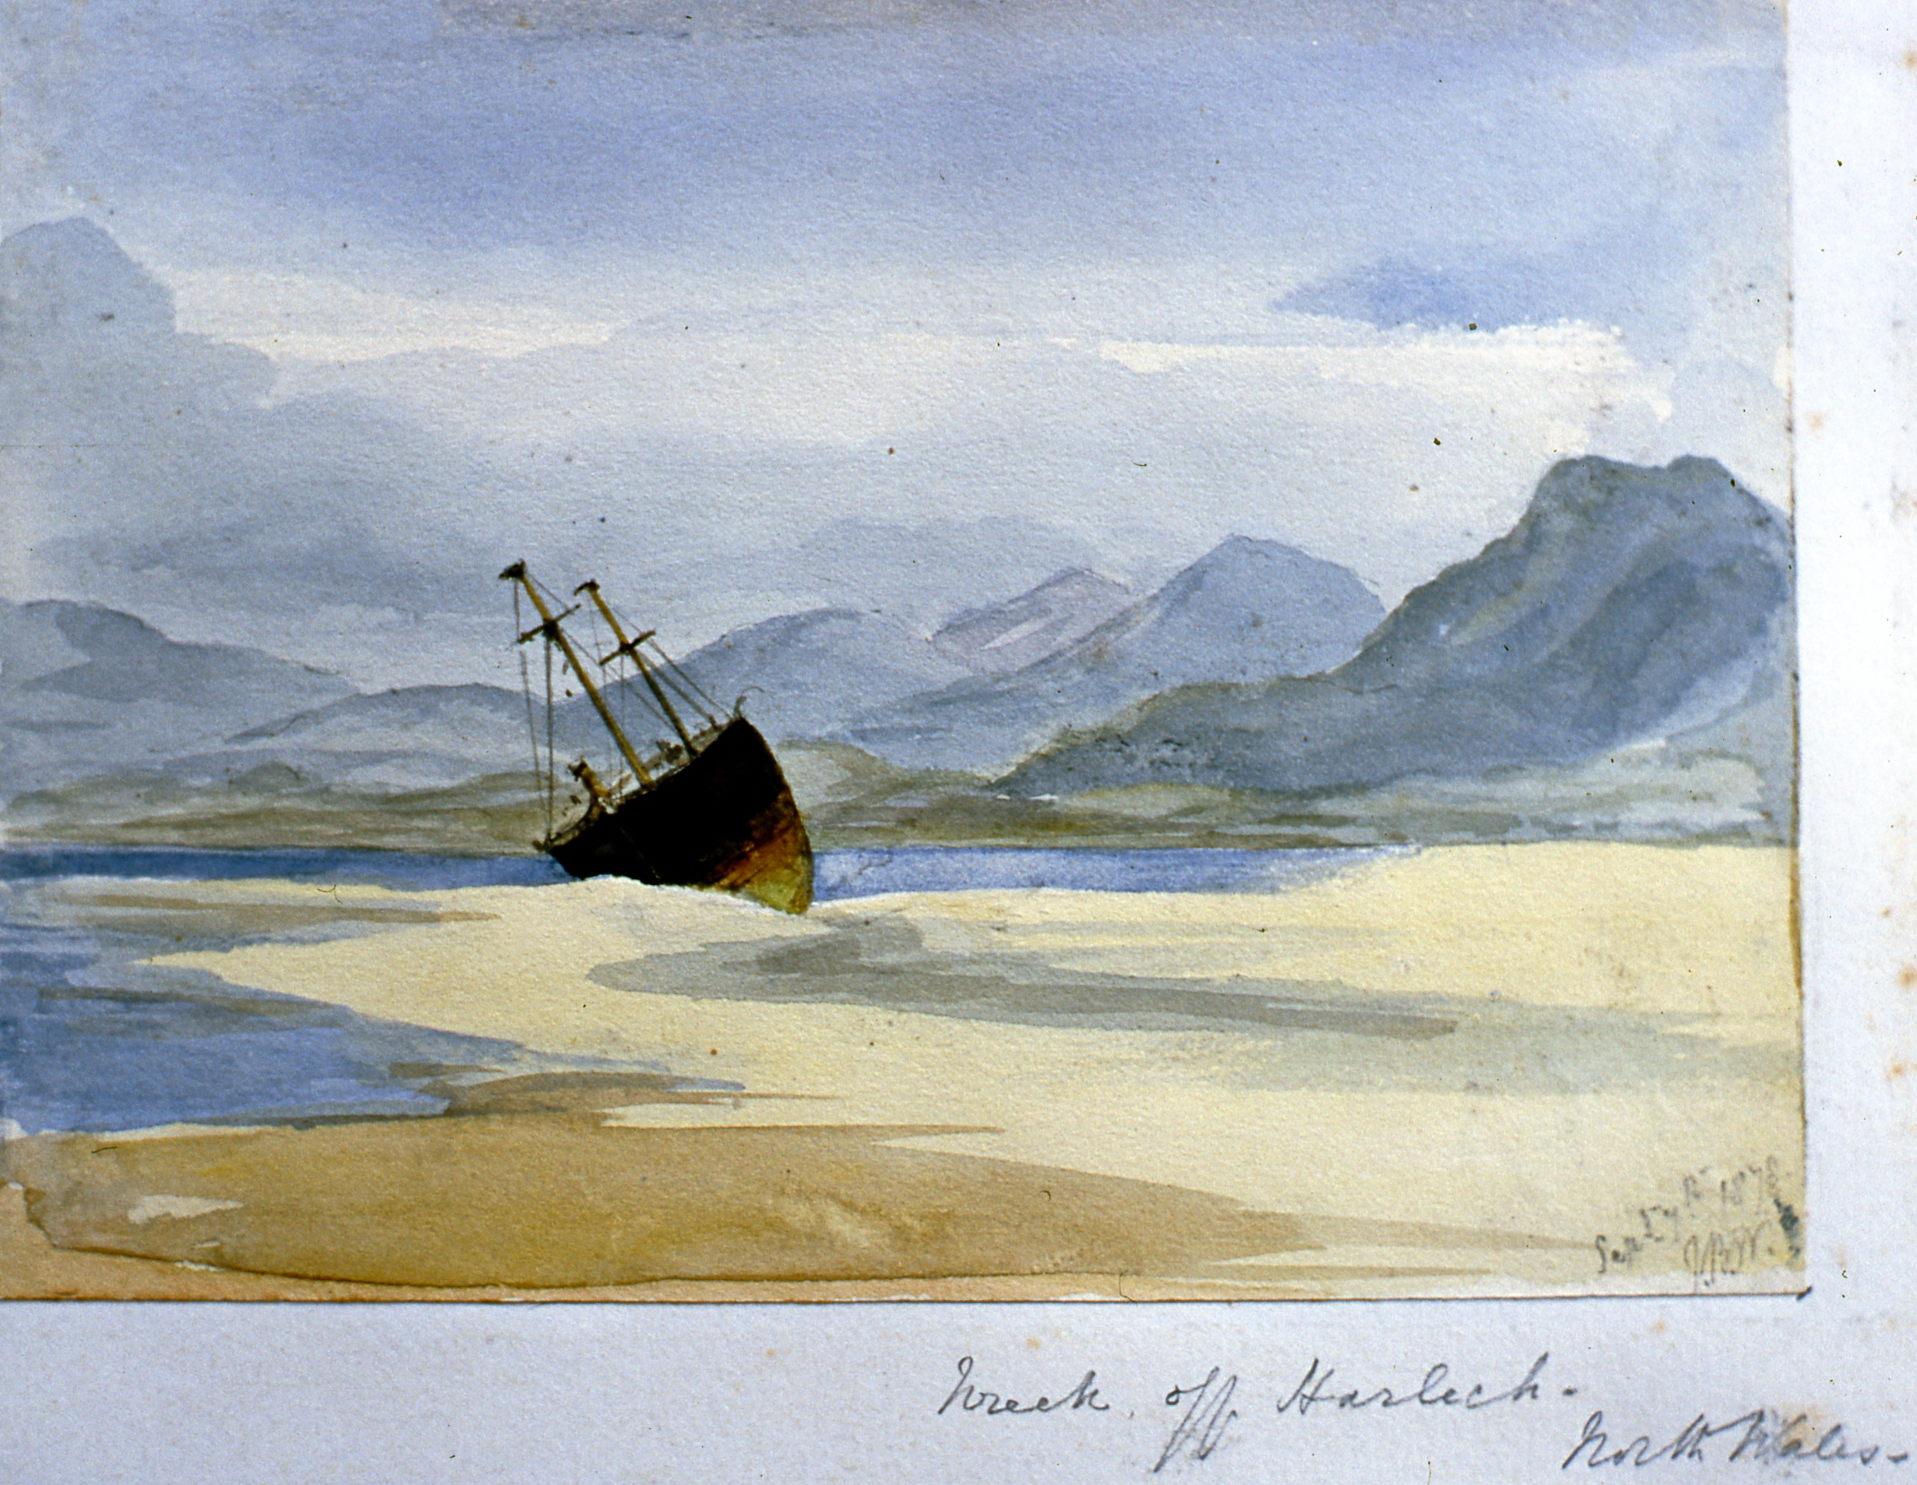 "Wreck off Harleck, North Wales , September 1878, Julia Bullock Webster, watercolour on paper, 5"" x 7"", 2003.02.45, gift of The Grist Mill at Keremeos"